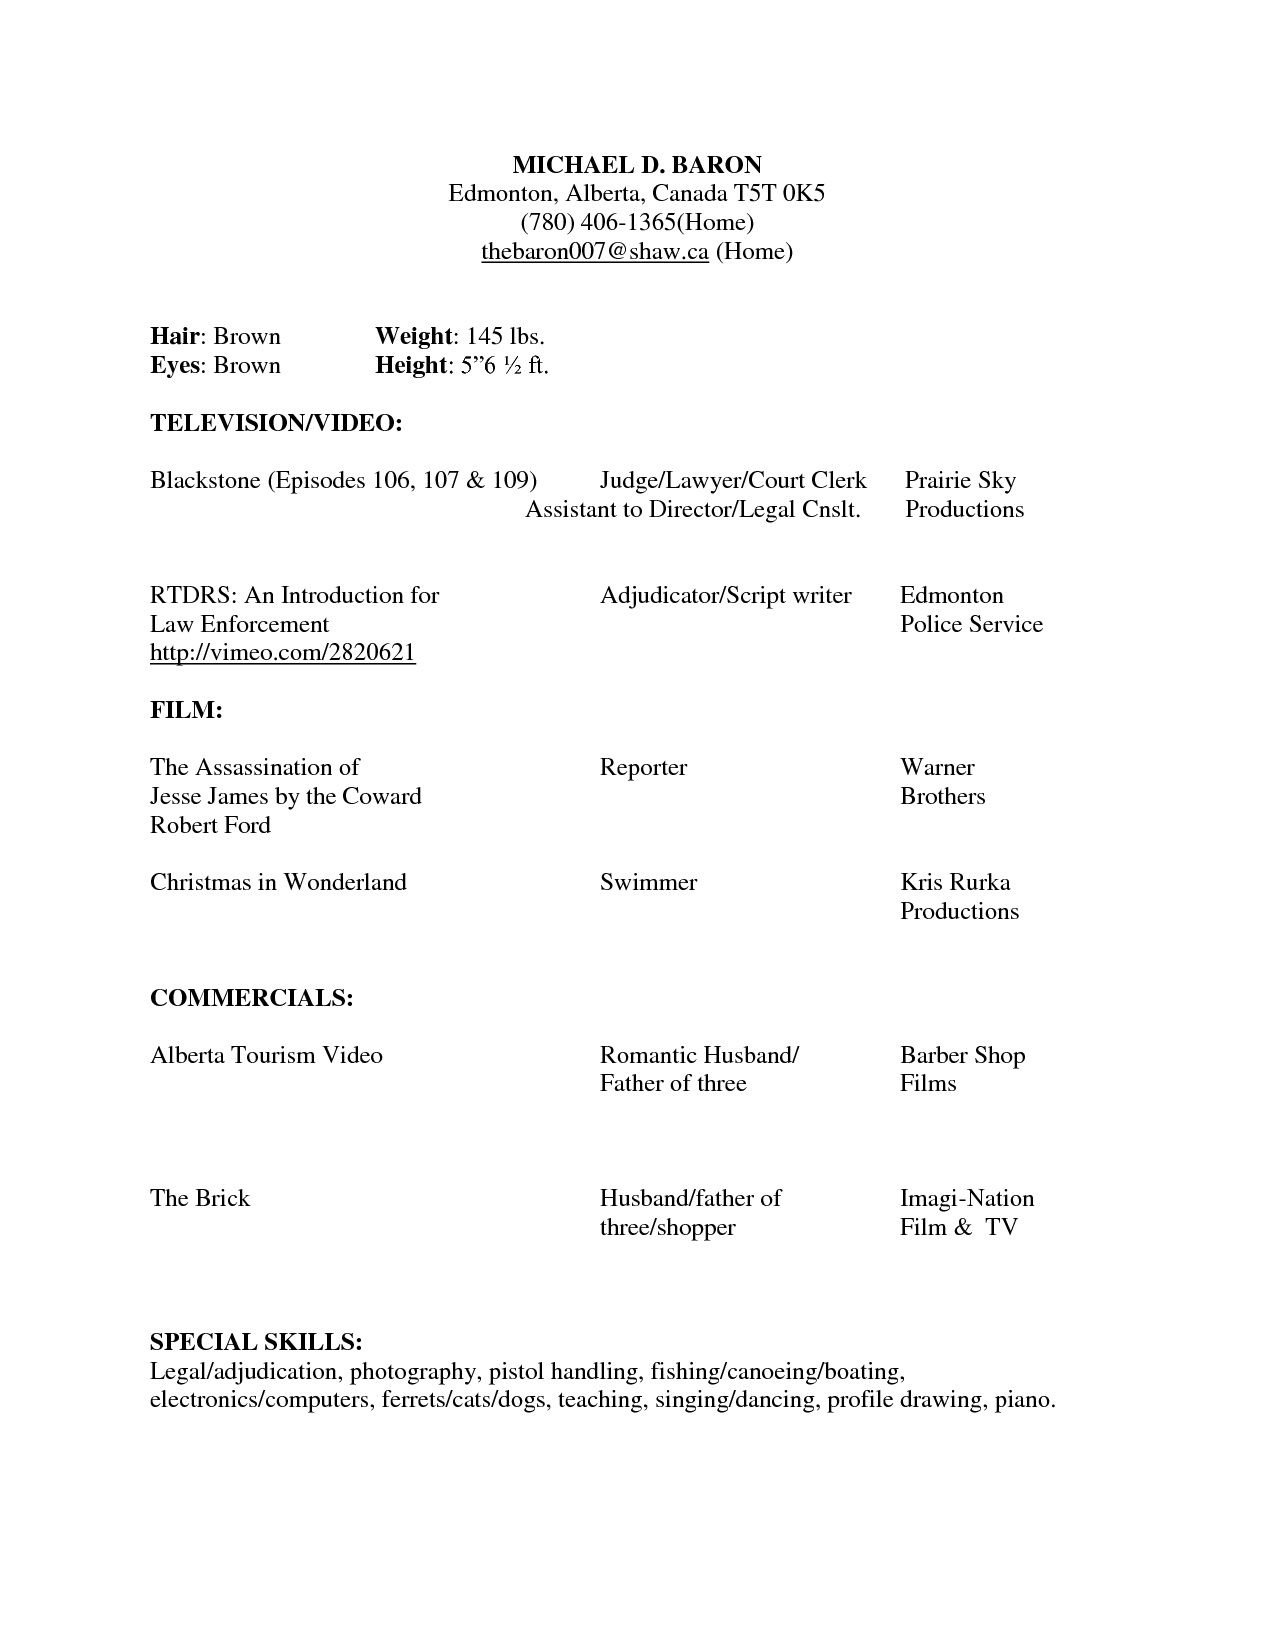 beginner acting resume sample topresume info  beginner acting resume sample 095 topresume info 2014